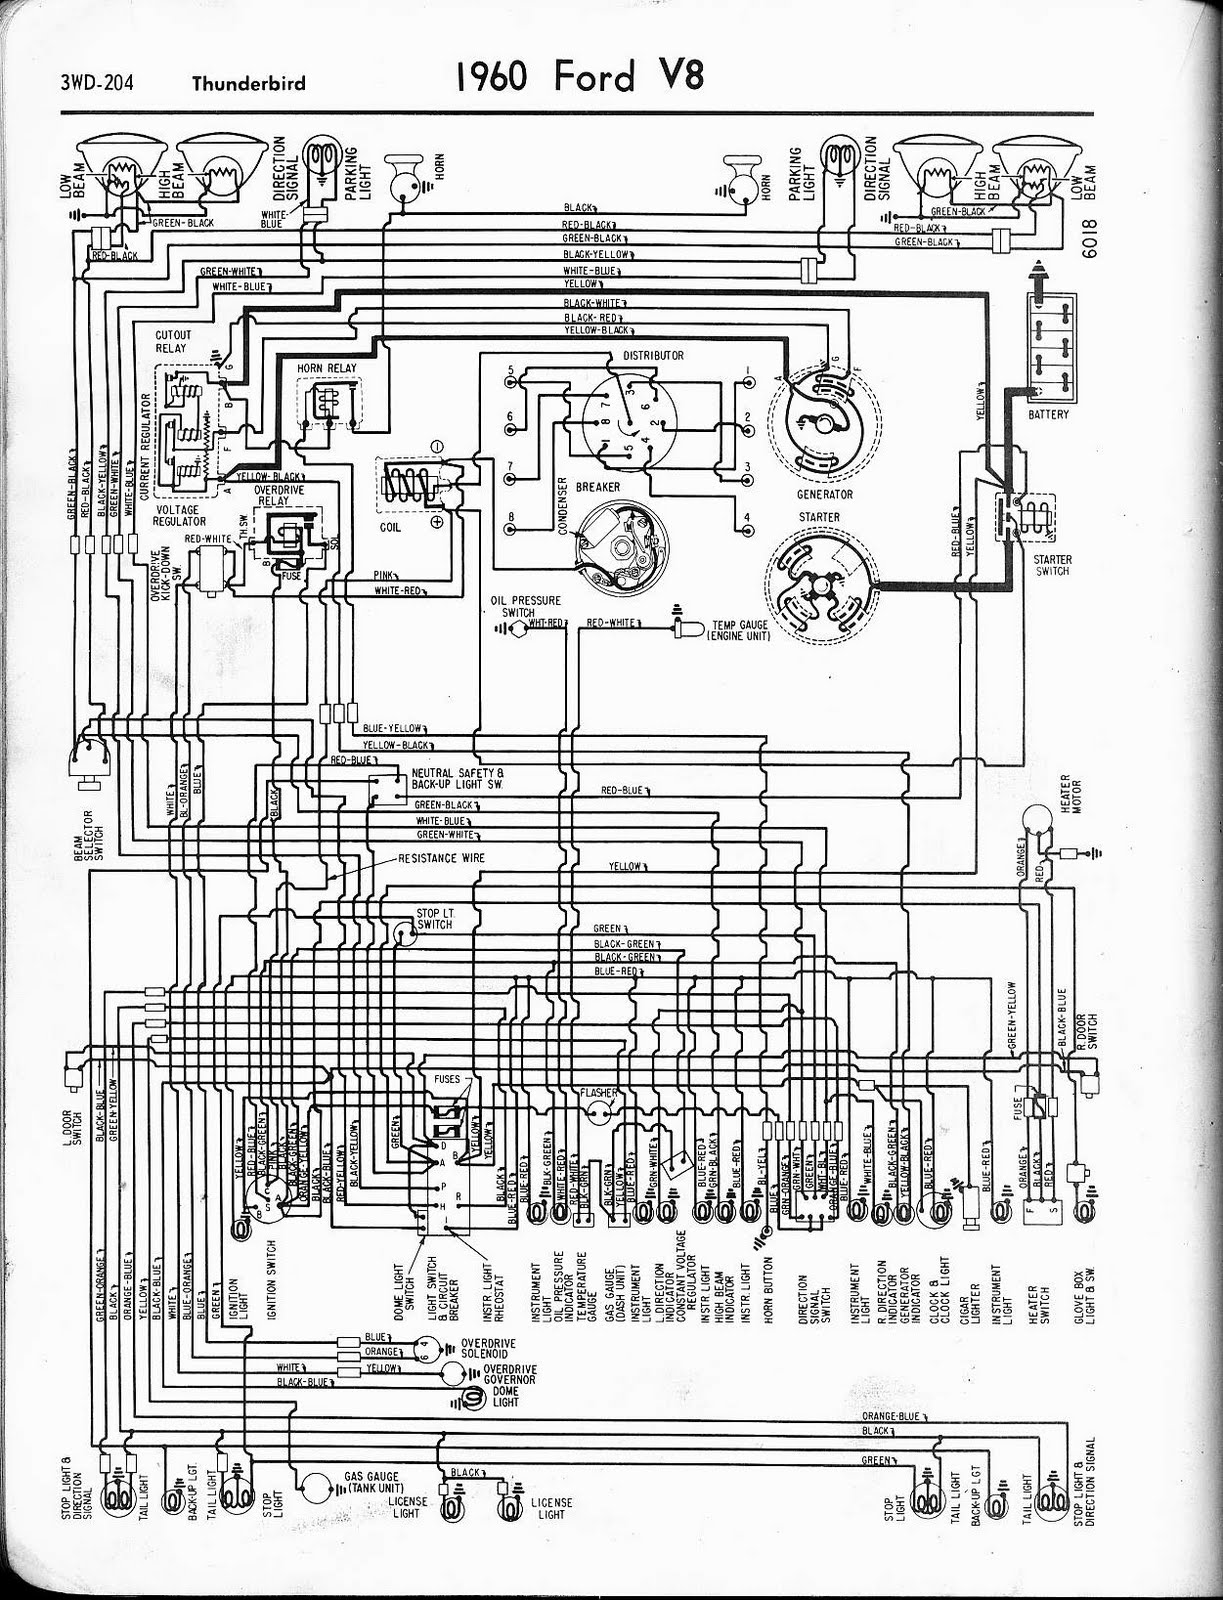 Free Auto Wiring Diagram: 1960 Ford V8 Thunderbird Wiring Diagram